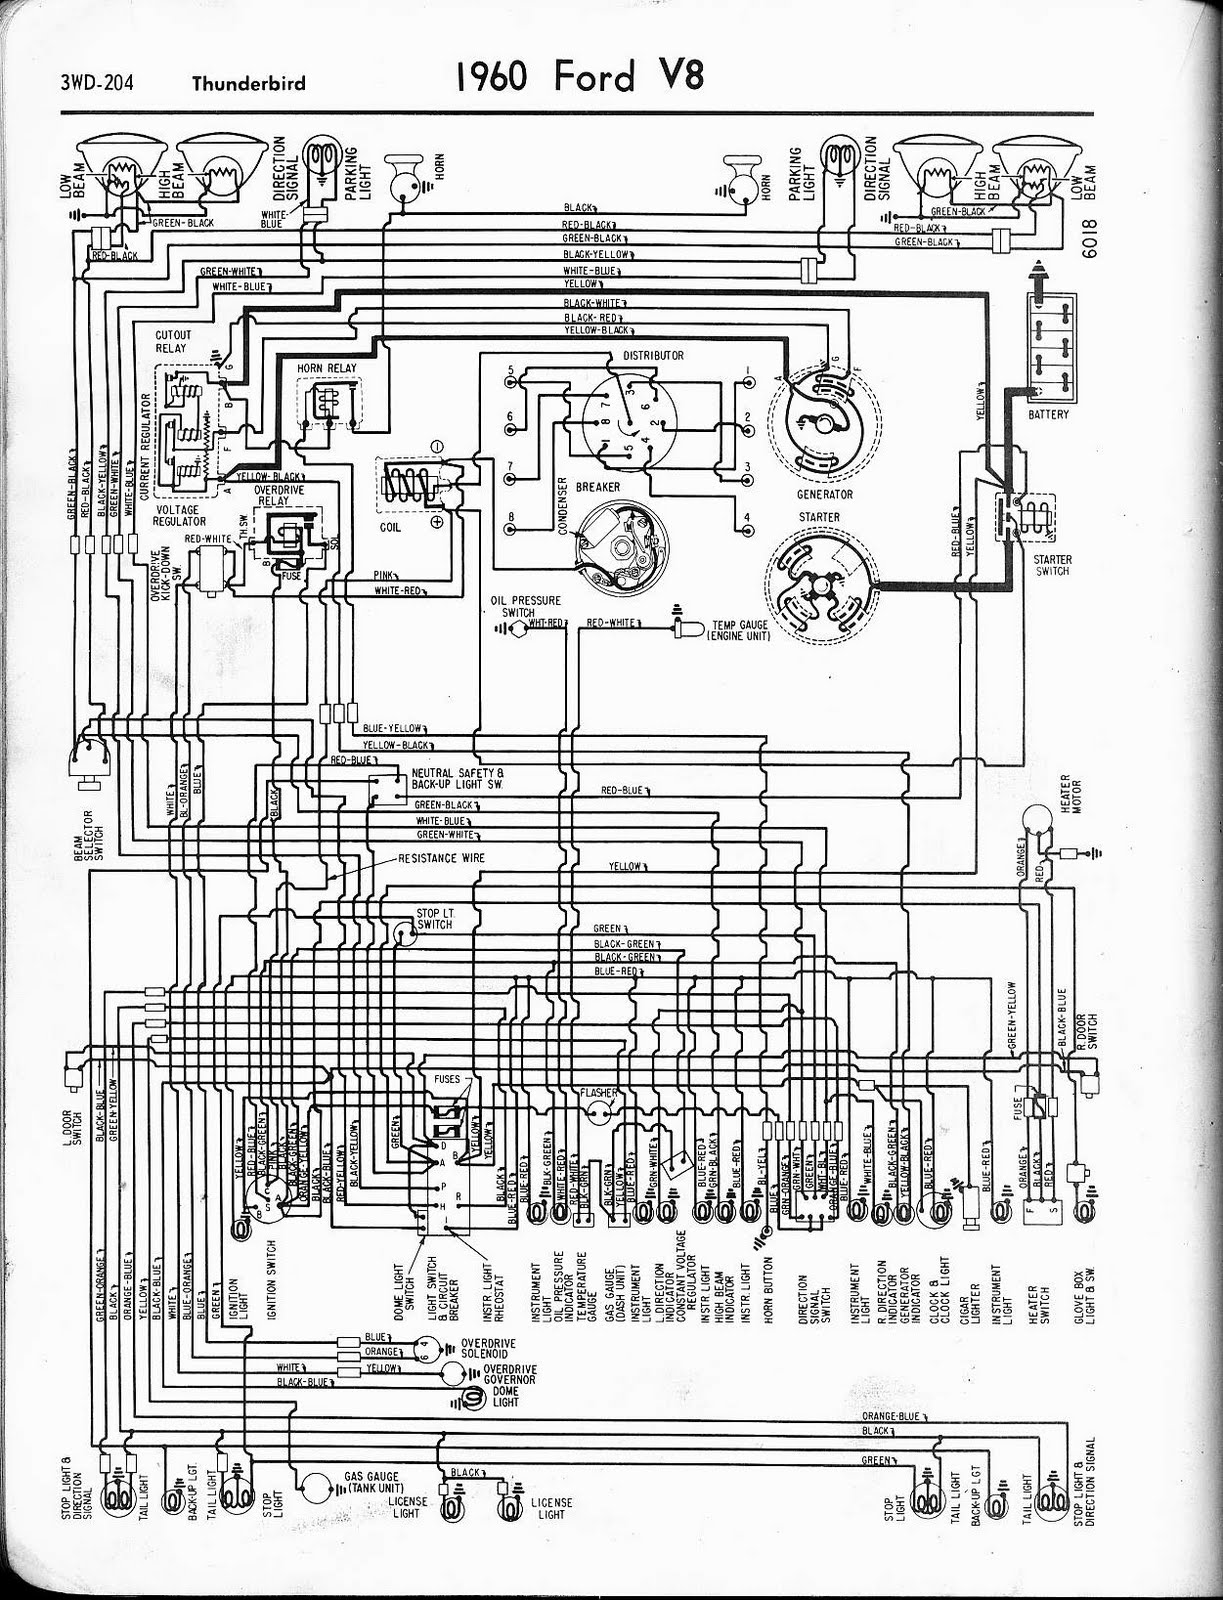 Free Auto Wiring Diagram: 1960 Ford V8 Thunderbird Wiring Diagram